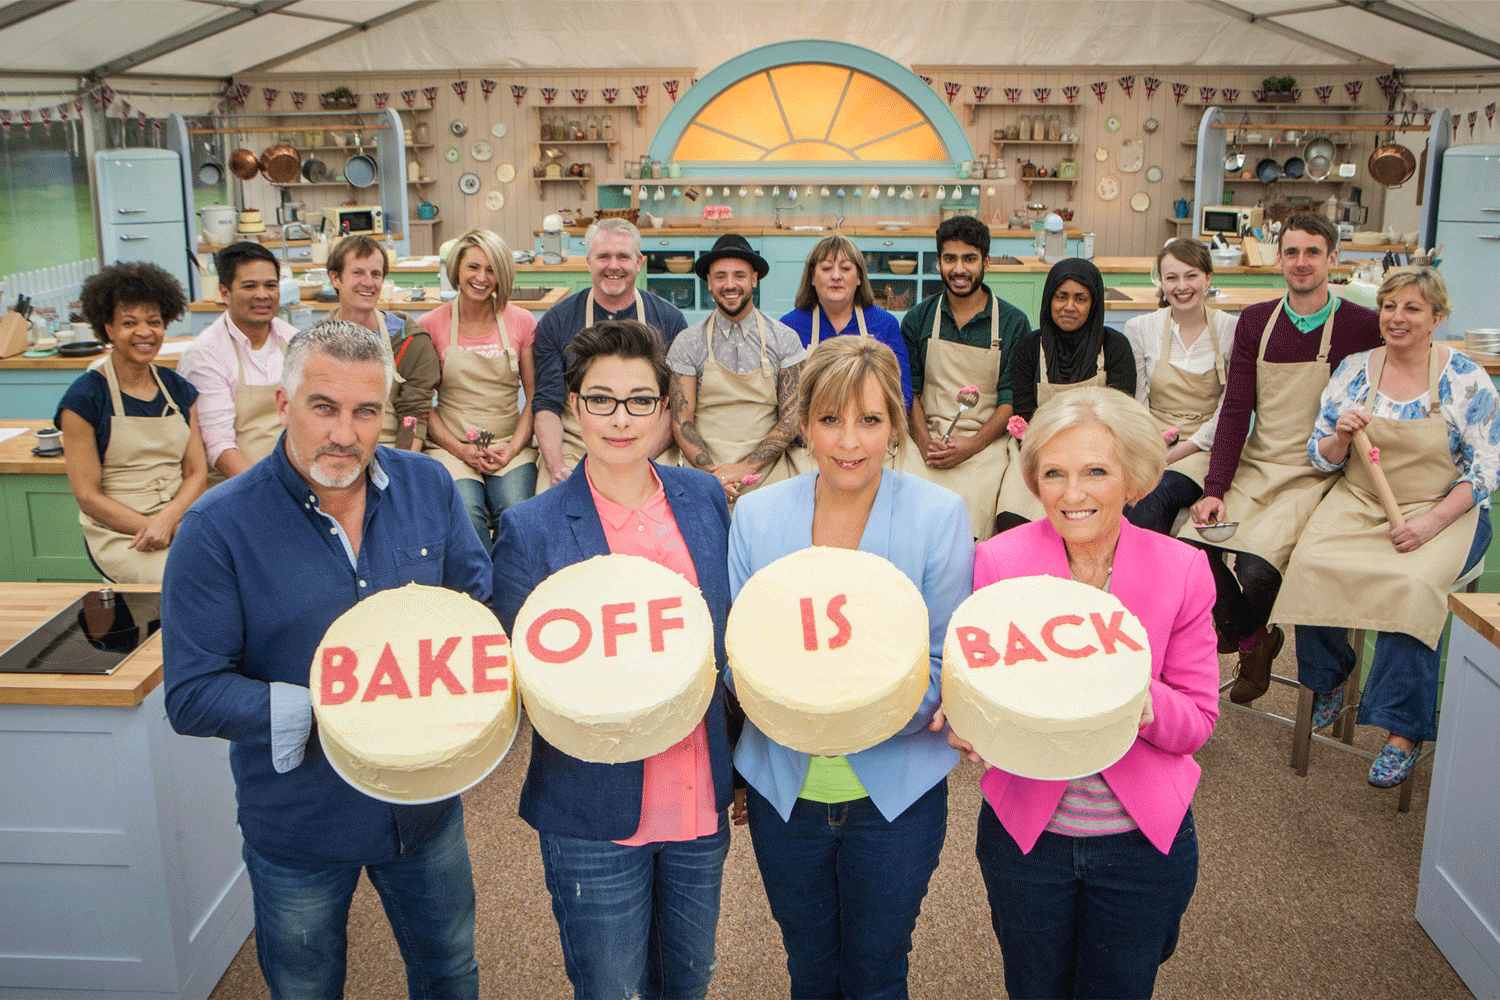 GREAT BRITISH BAKE OFF KLAXON! (well, one week to go) Read about the new series here http://t.co/XT6OC0WZIh #GBBO http://t.co/A0XUWOlDk5